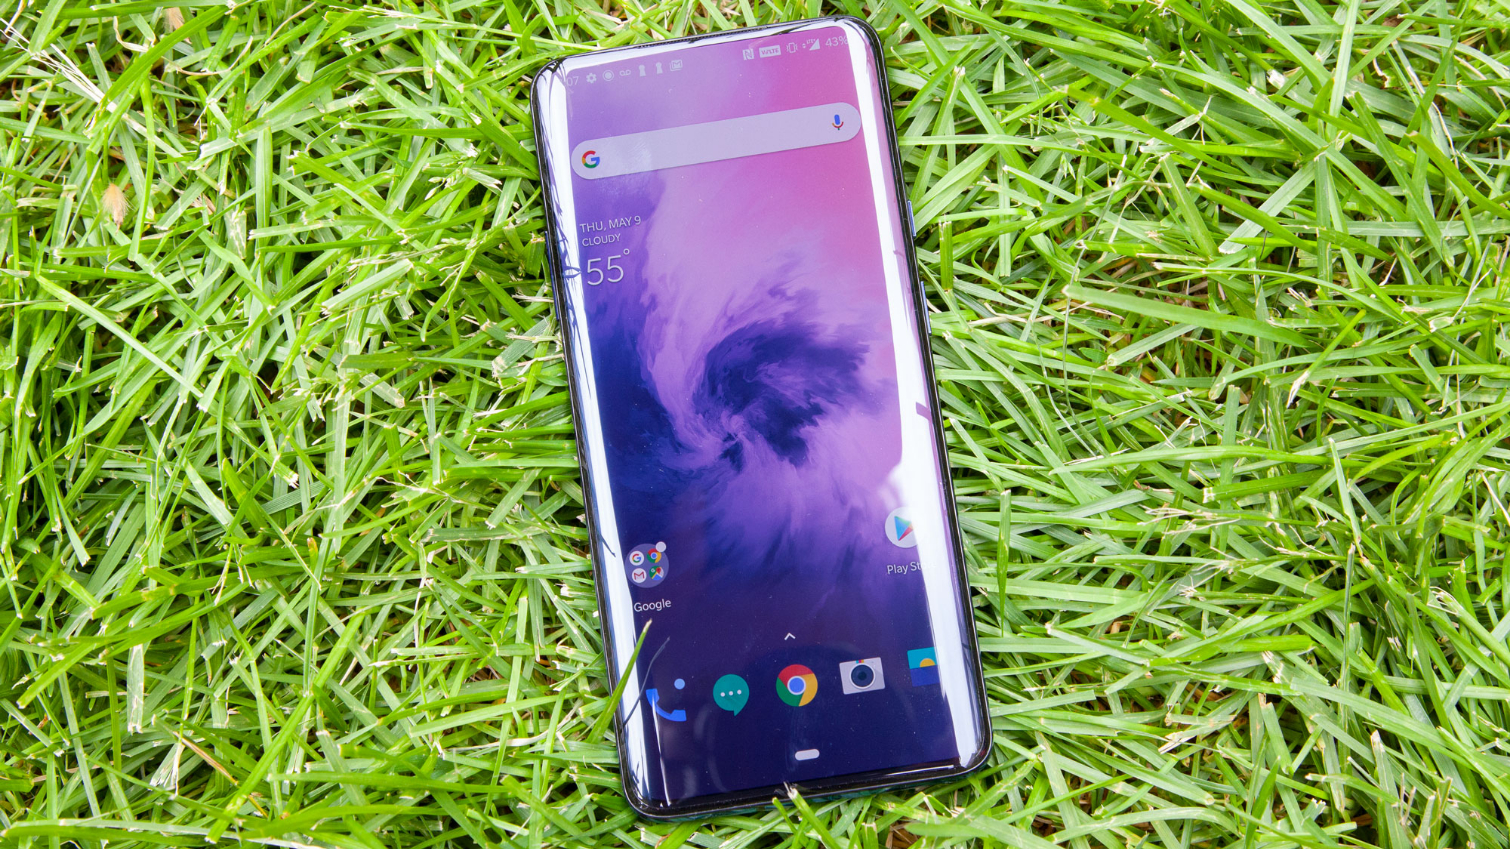 OnePlus 7 Pro Review: The Flagship Phone Value of the Year | Tom's Guide